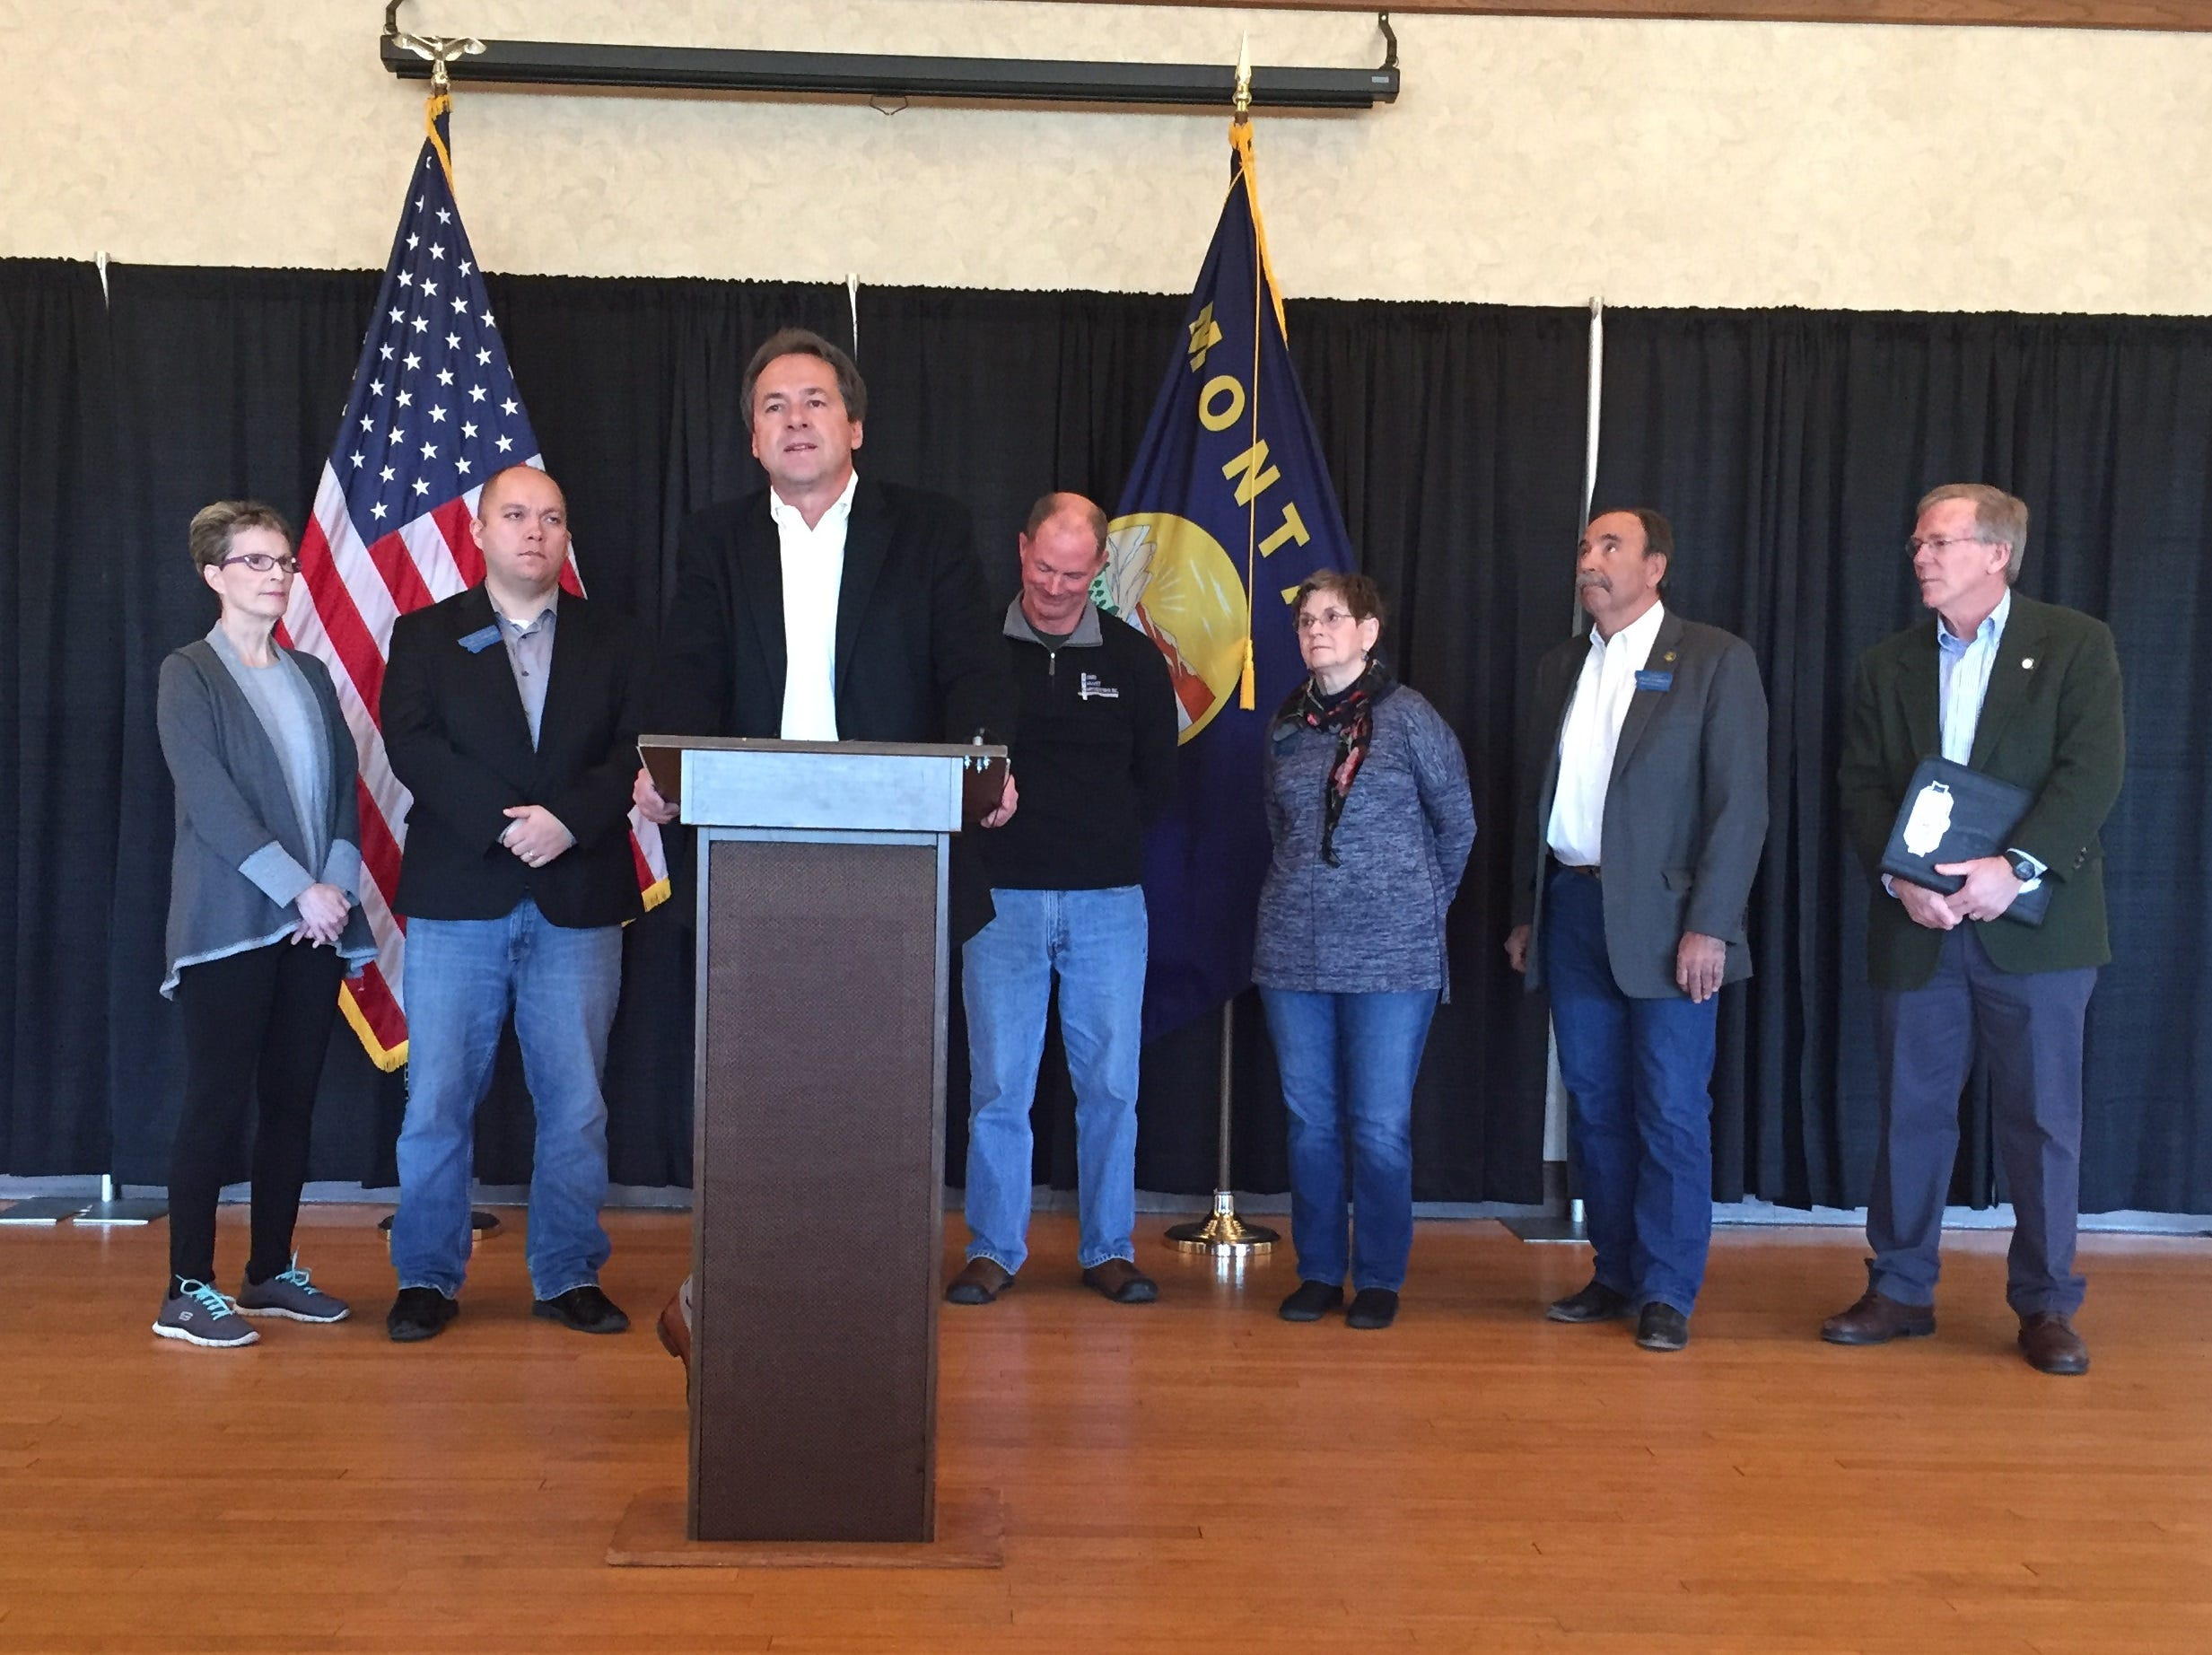 TRIBUNE PHOTO/KRISTEN INBODY Gov. Steve Bullock outlines his proposal for infrastructure spending during the next biennium and a trust fund that would provide for future projects.